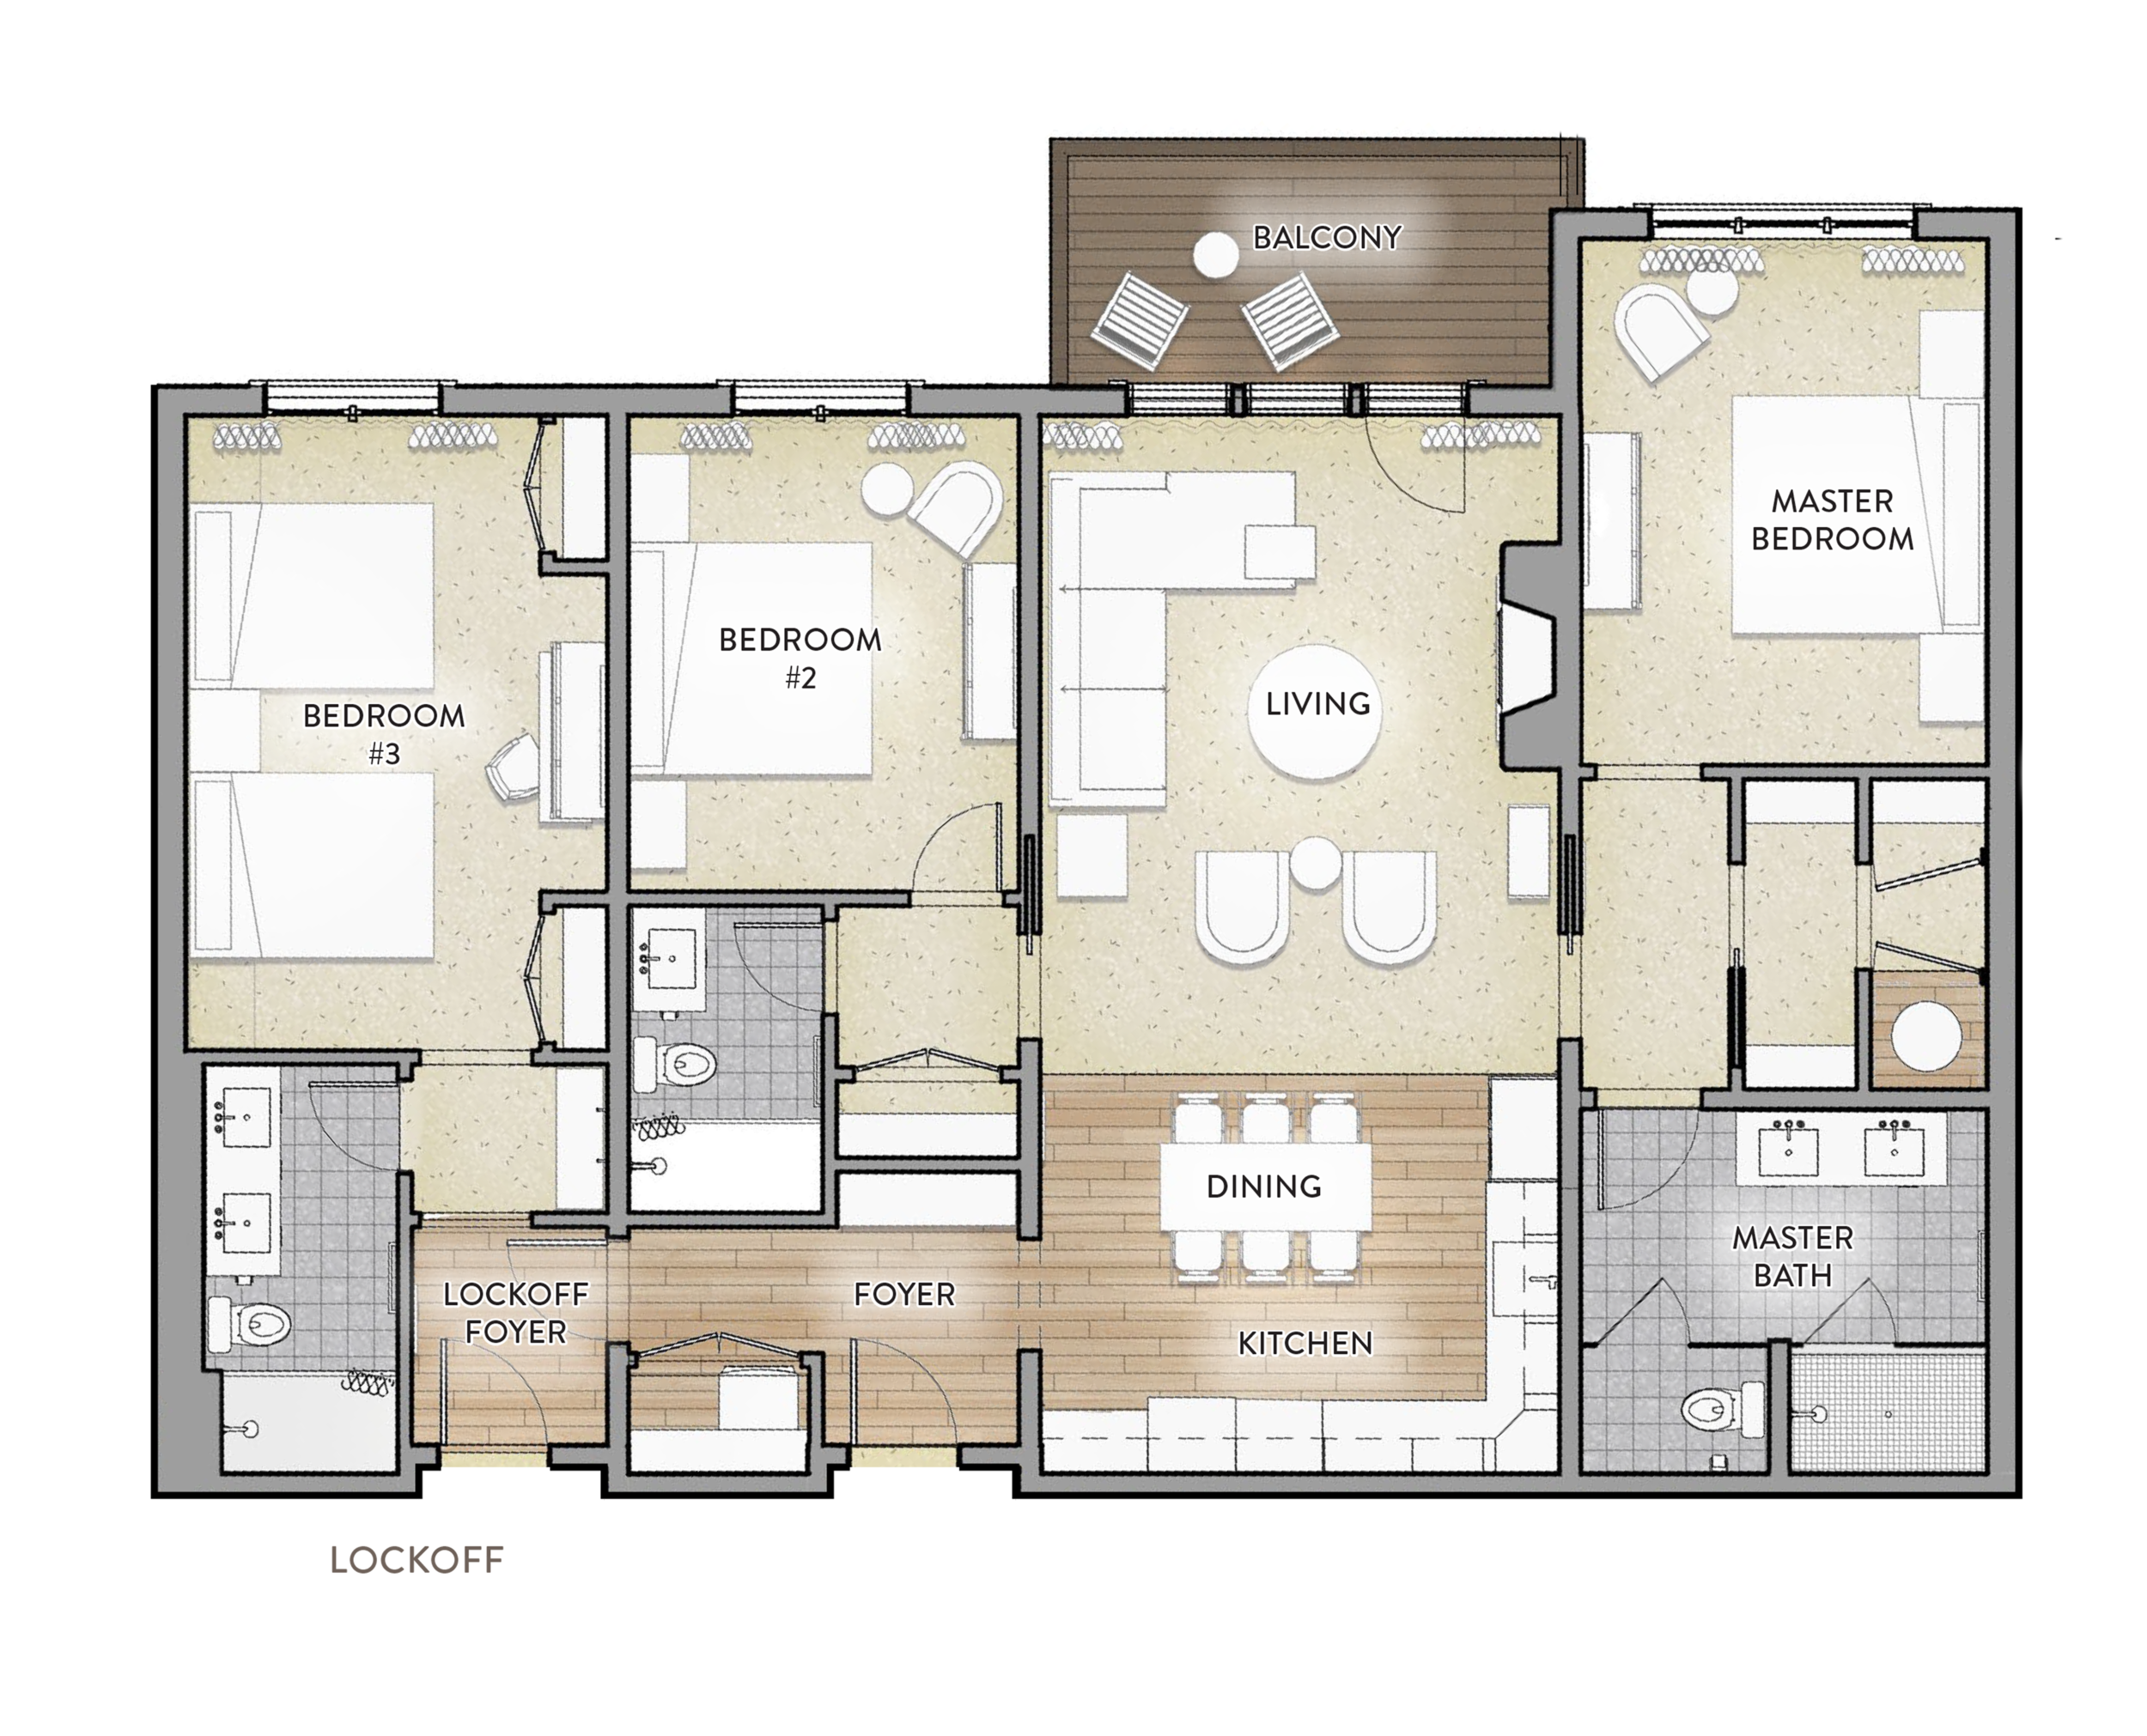 Type B - 3 bed / 3 bathArea: 1578 SF(Paint to Paint)Residences:135, 235, 335, 4351 BalconyLockoff